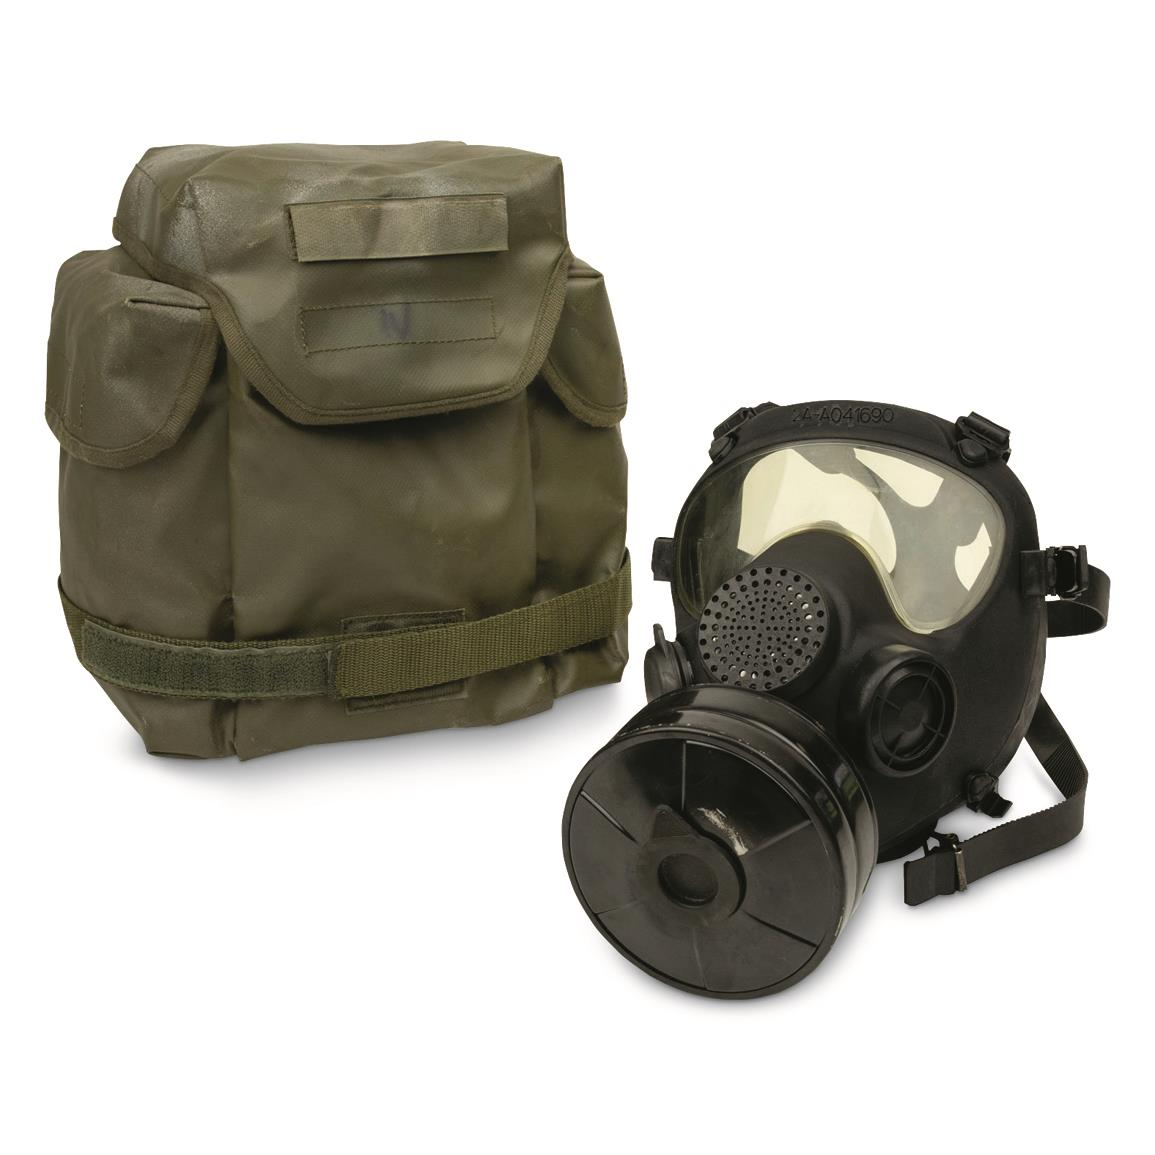 NATO Military Surplus MP5 Gas Mask with Bag and Filter, Like New